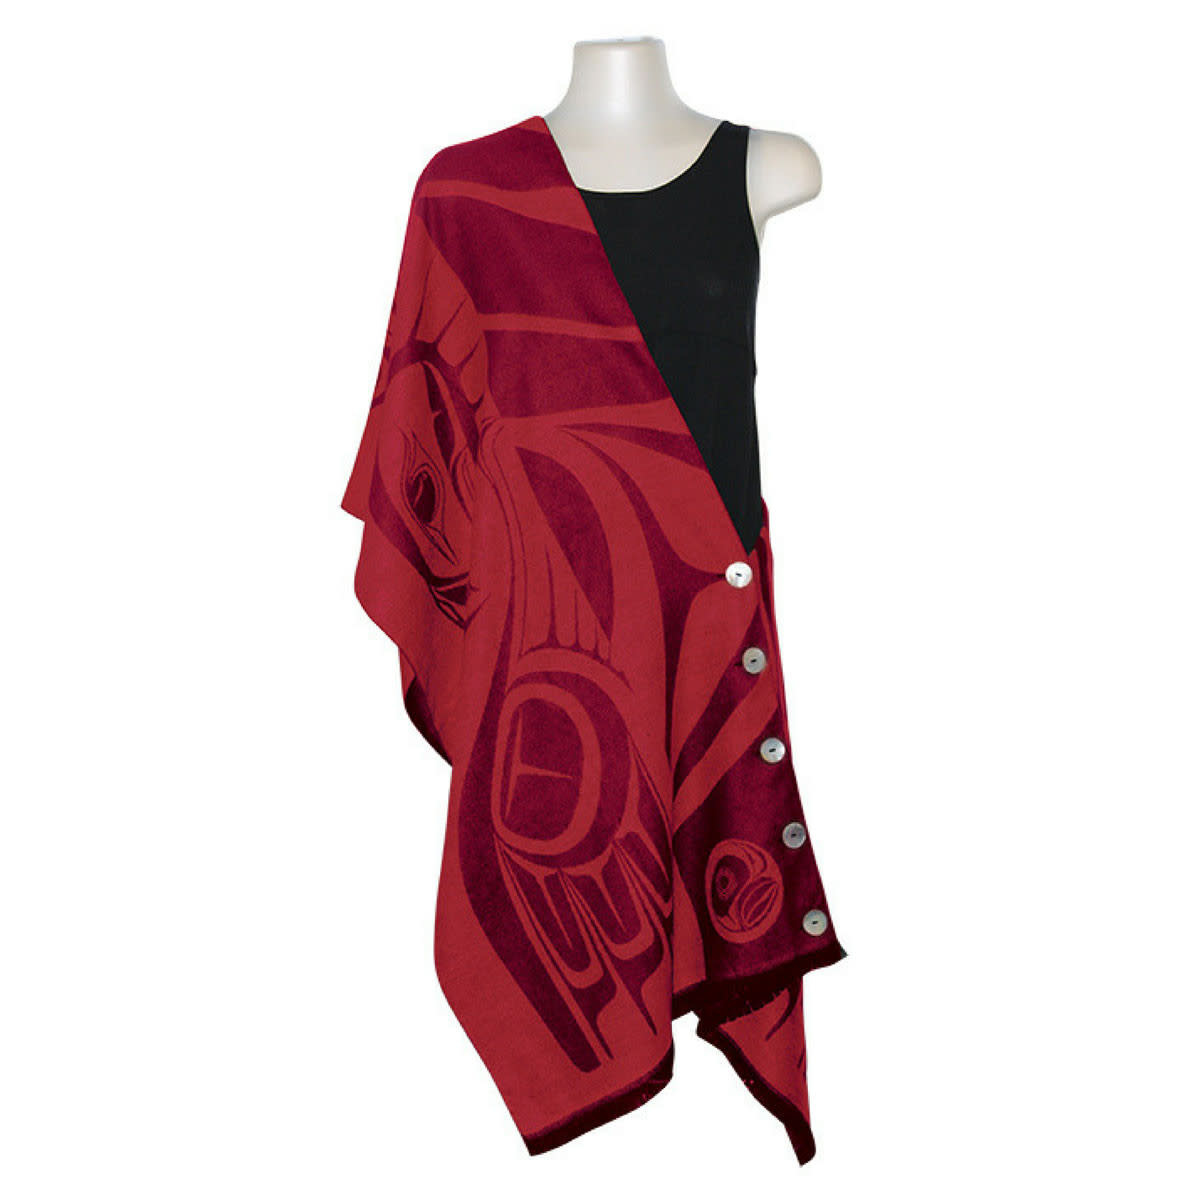 Button Shawl - Eagle by Paul Windsor-1